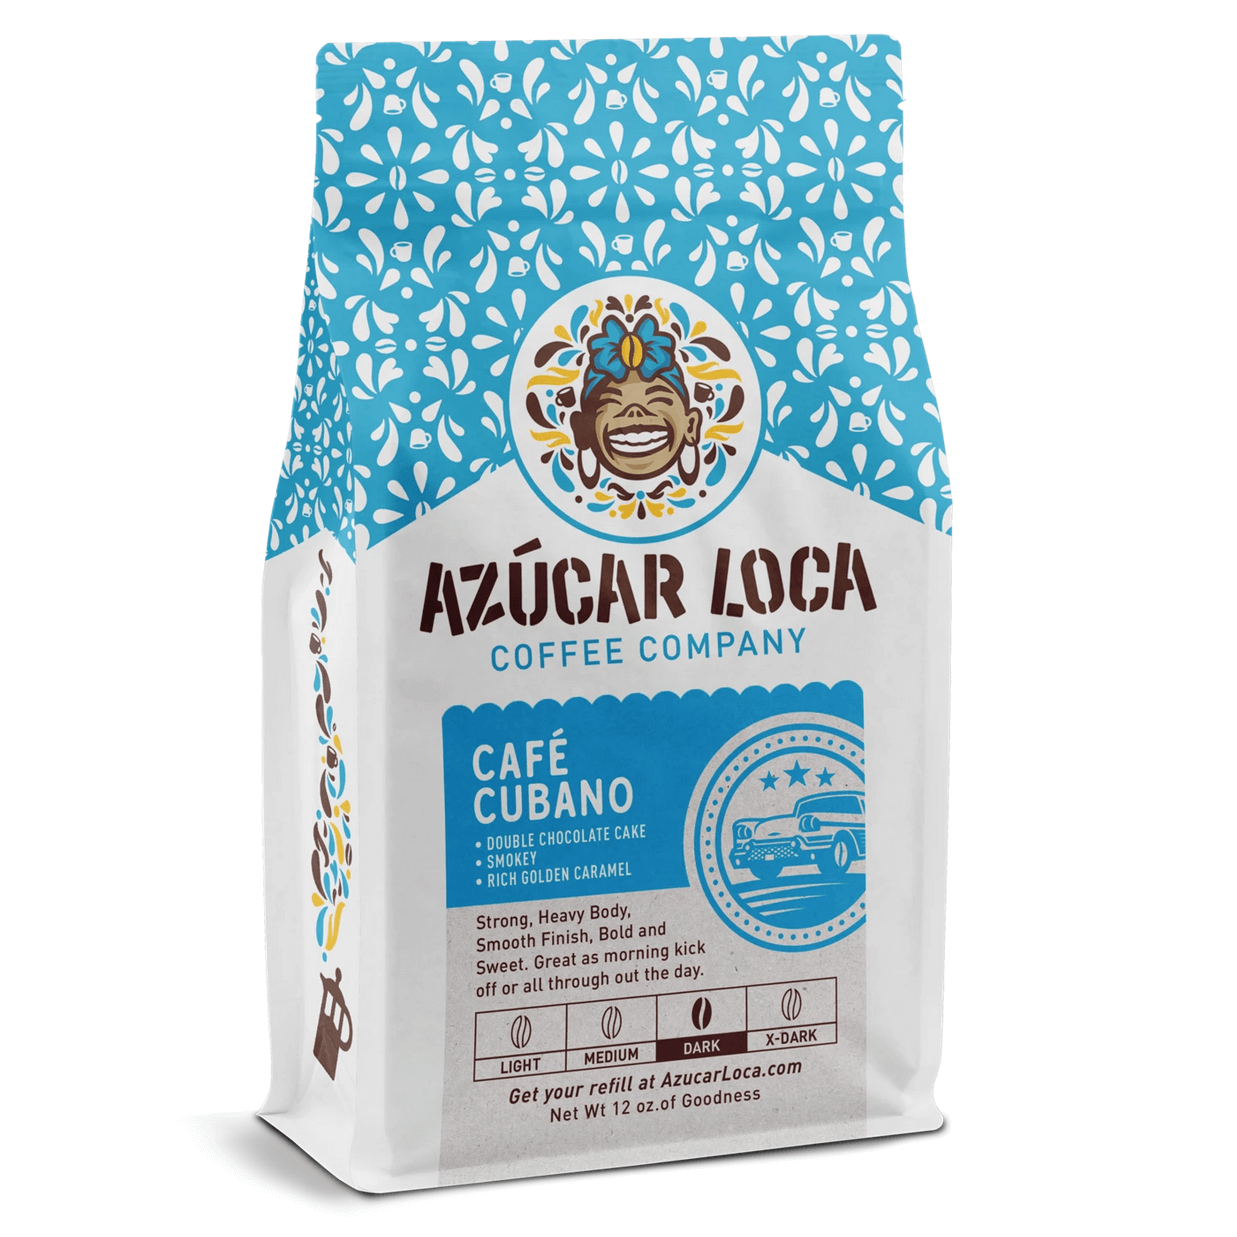 Café Cubano from Azucar Loca Coffee Company